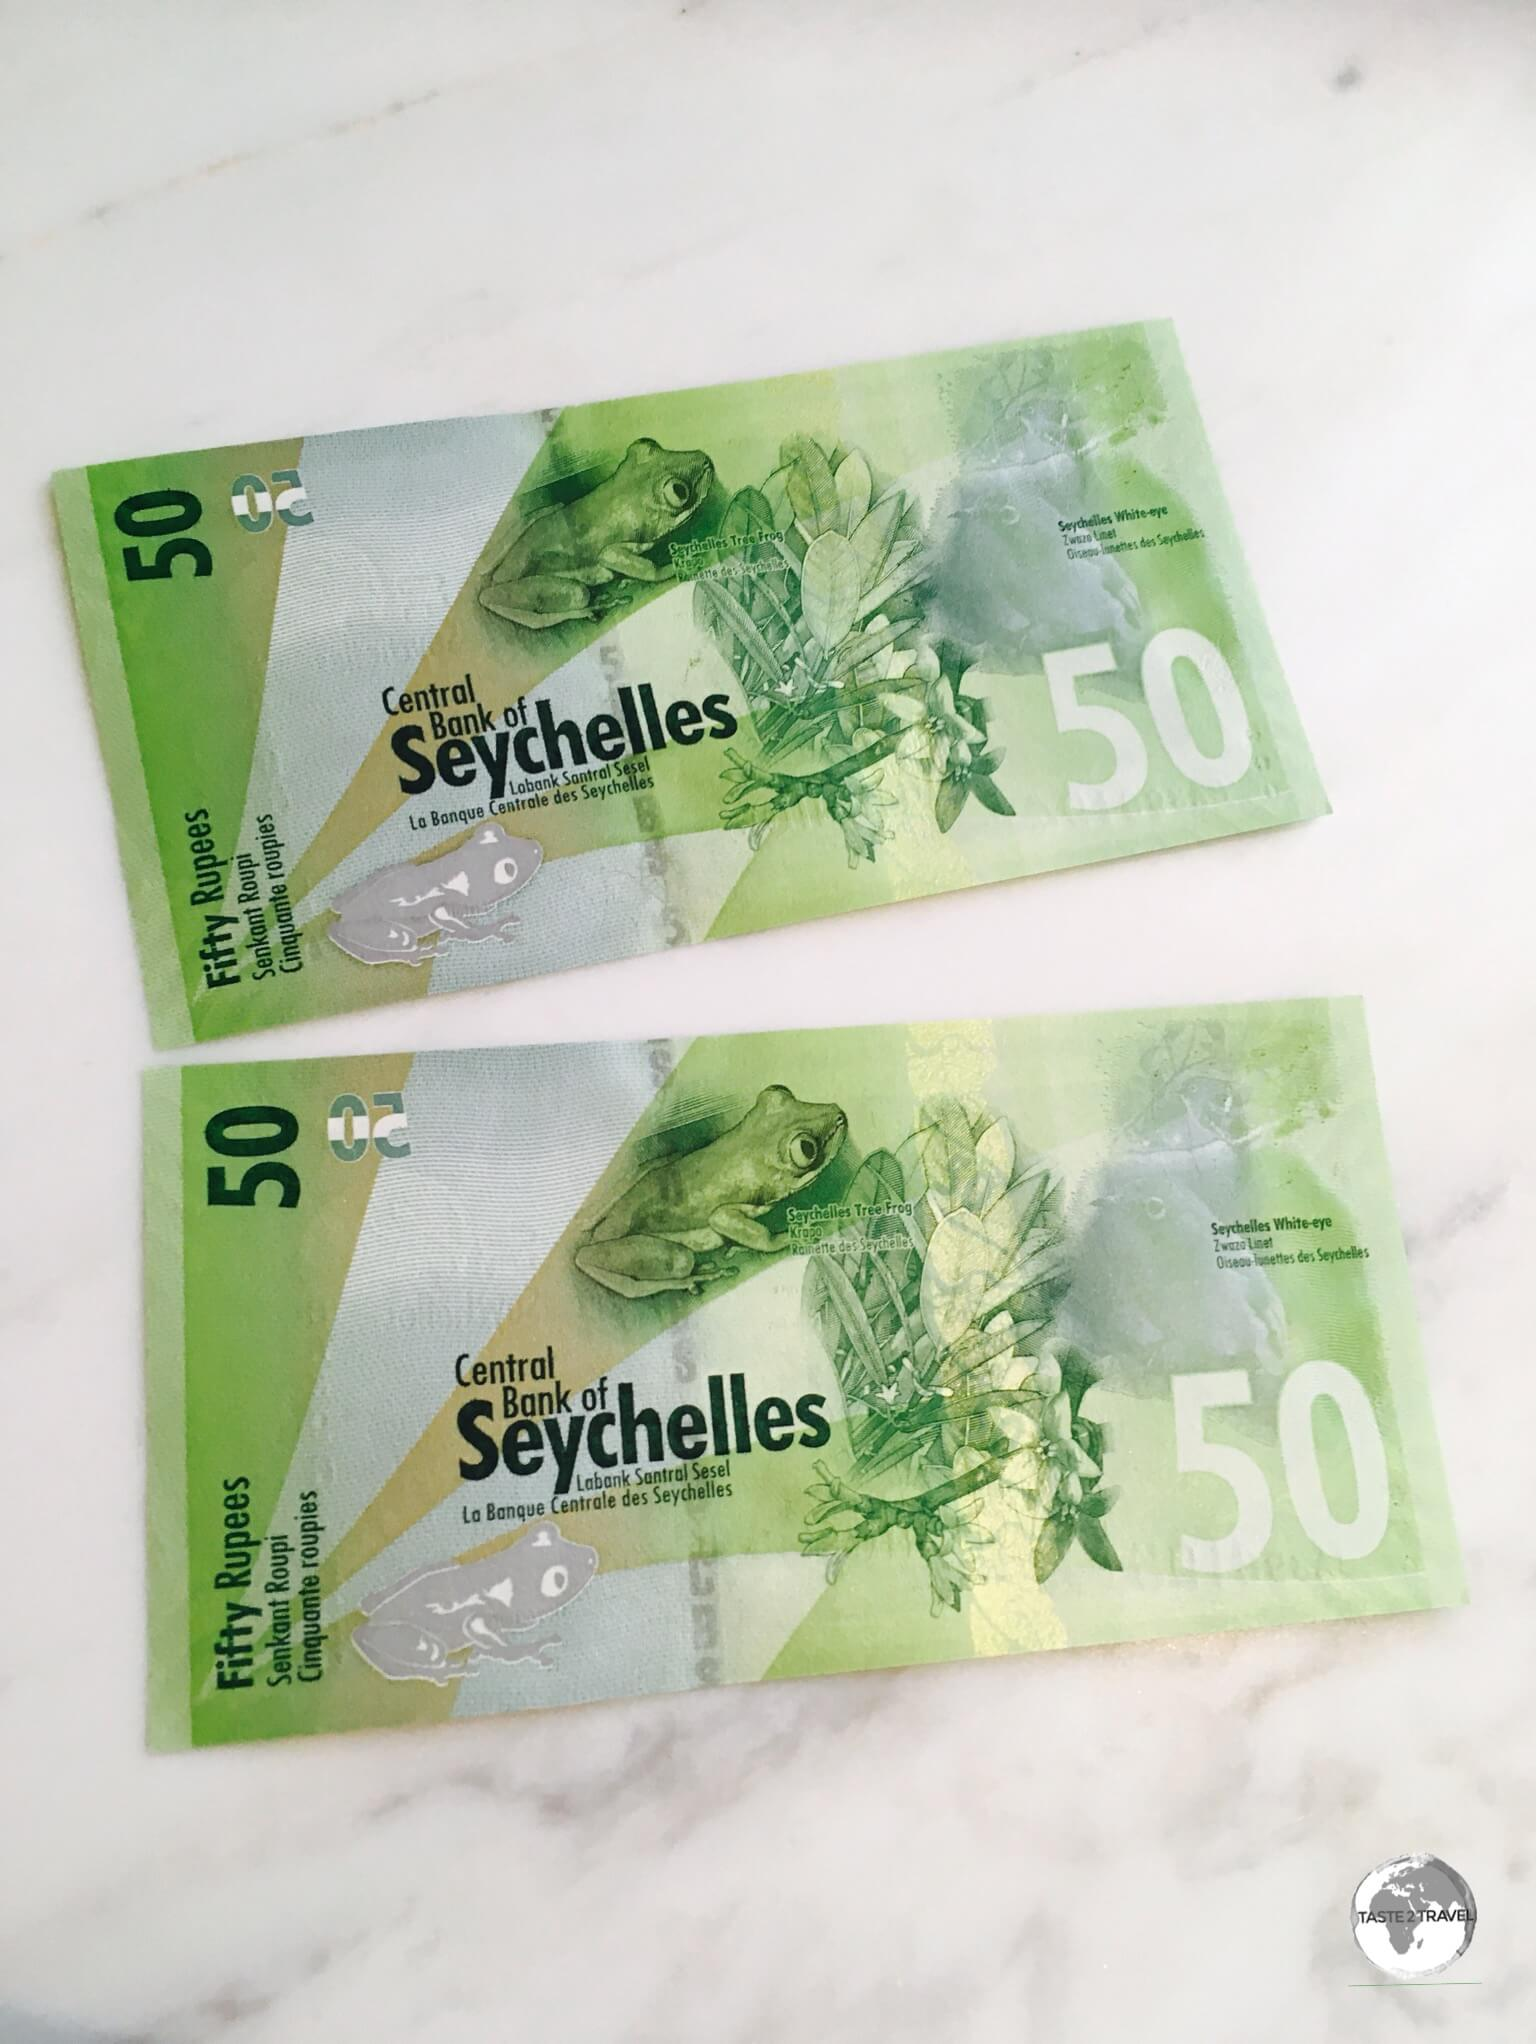 The back of the Seychelles 50 rupee note features the Seychelles Tree Frog.